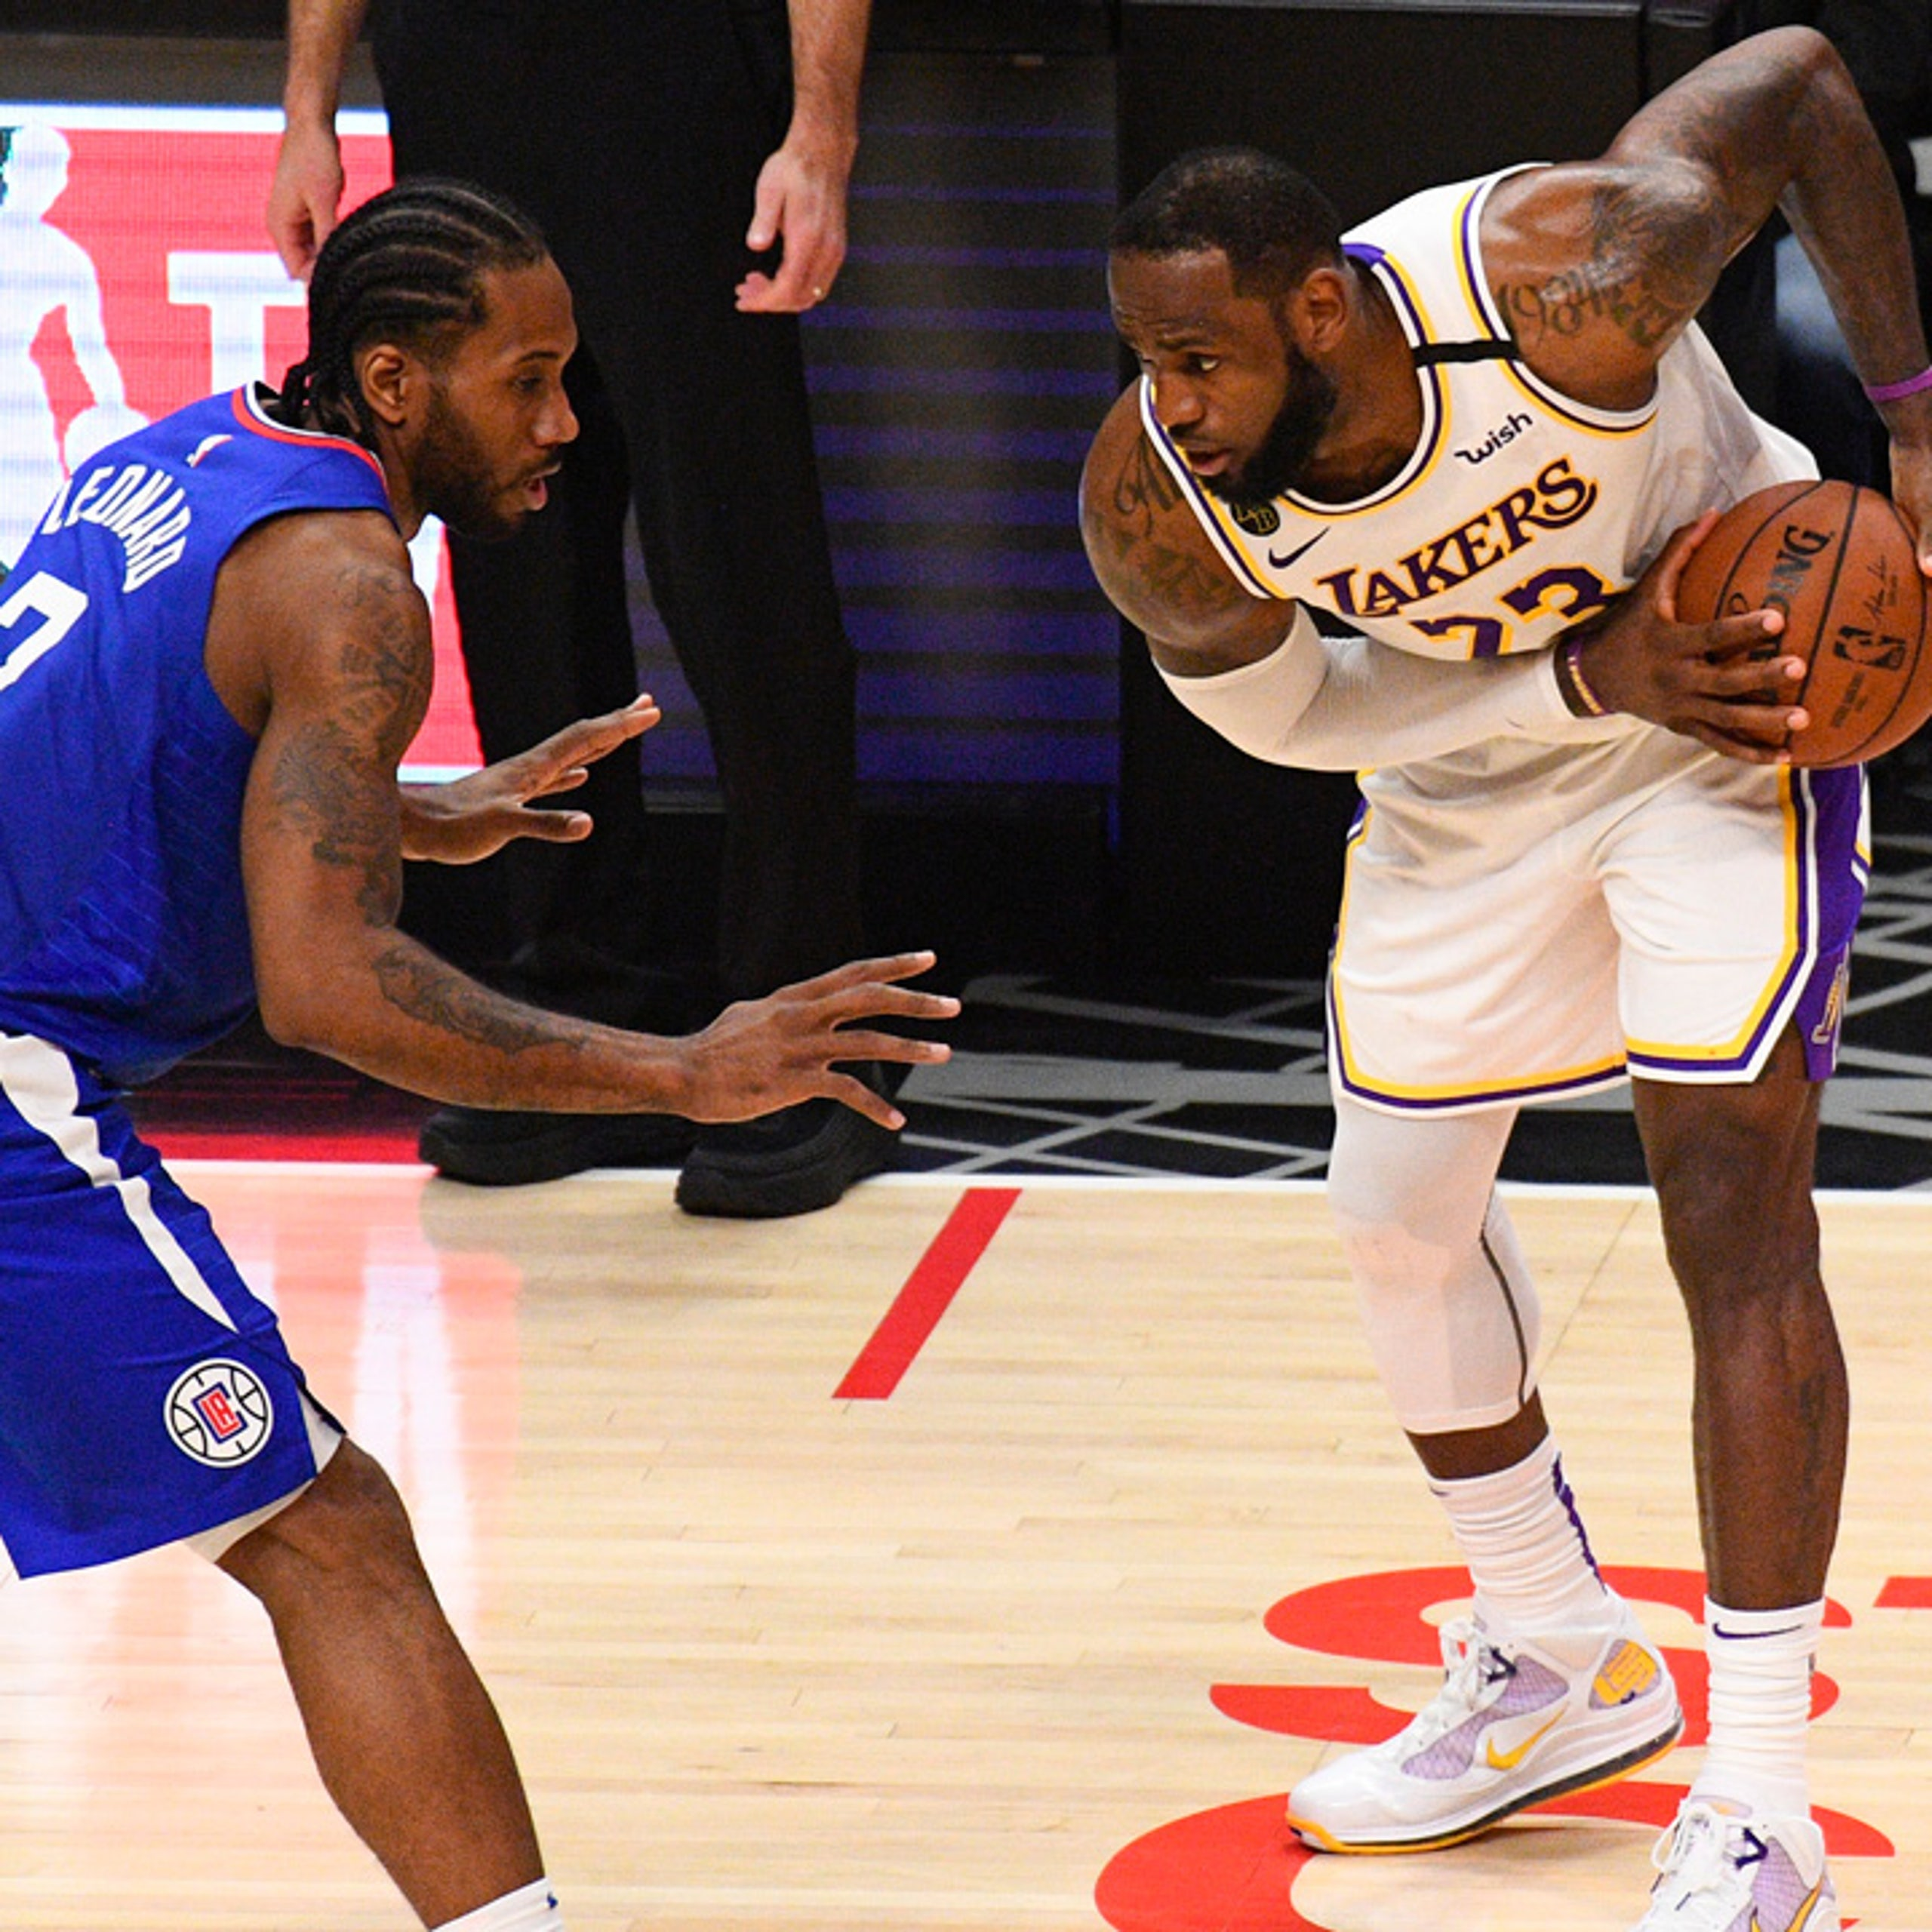 Nba preseason betting predictions for english premier cryptocurrency better than bitcoin value